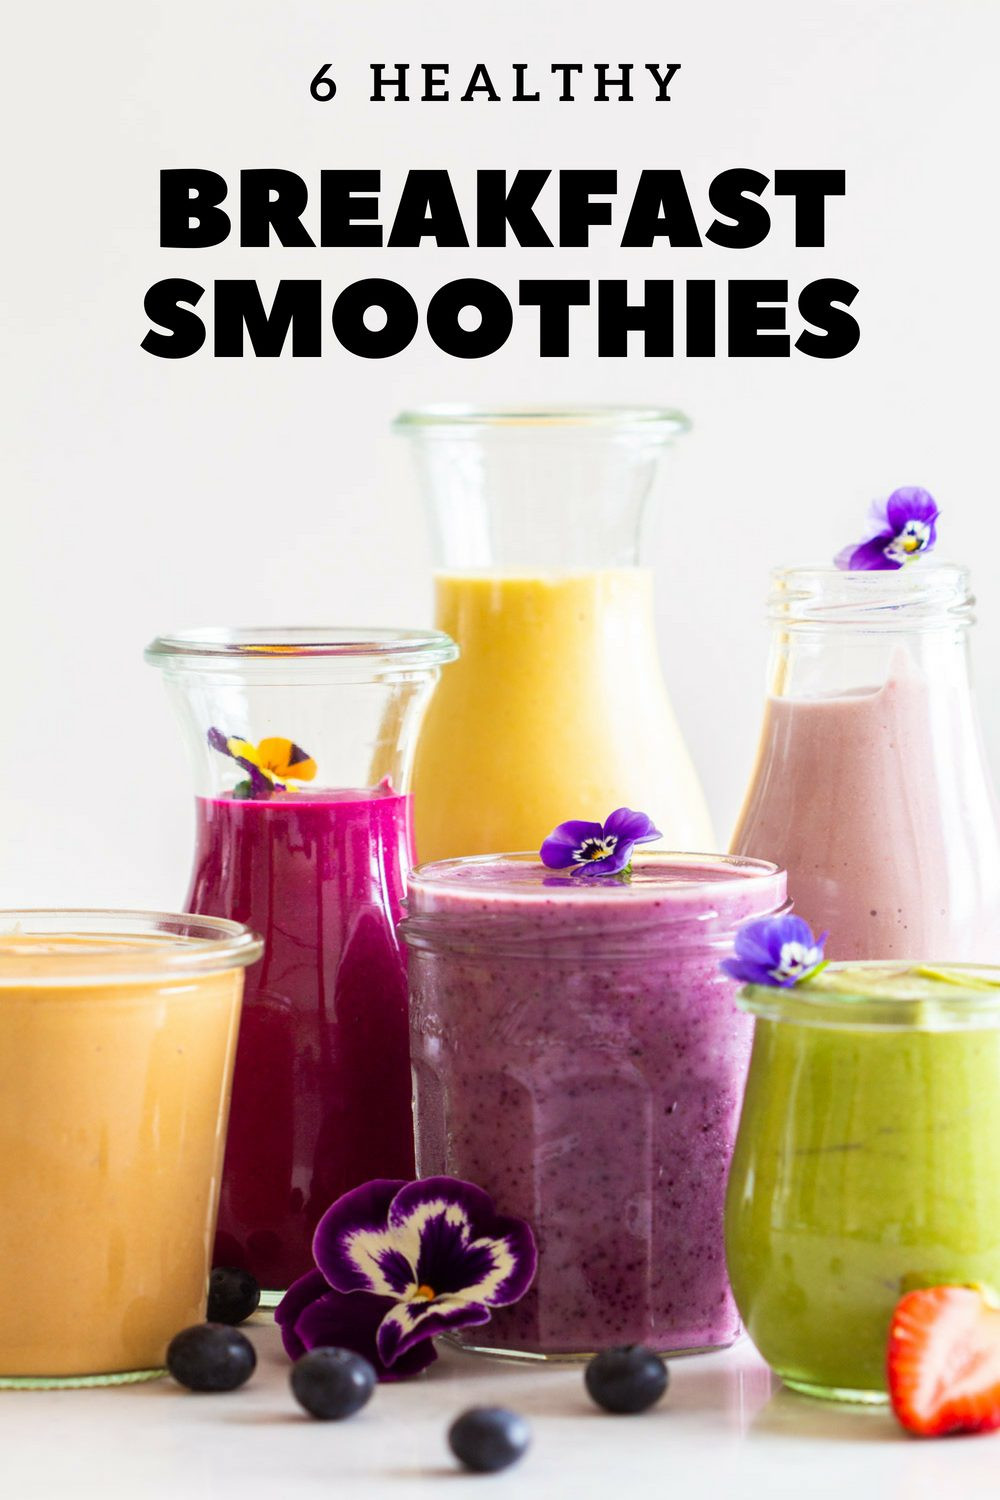 Healthy Shakes For Breakfast  Breakfast Recipes Green Healthy Cooking